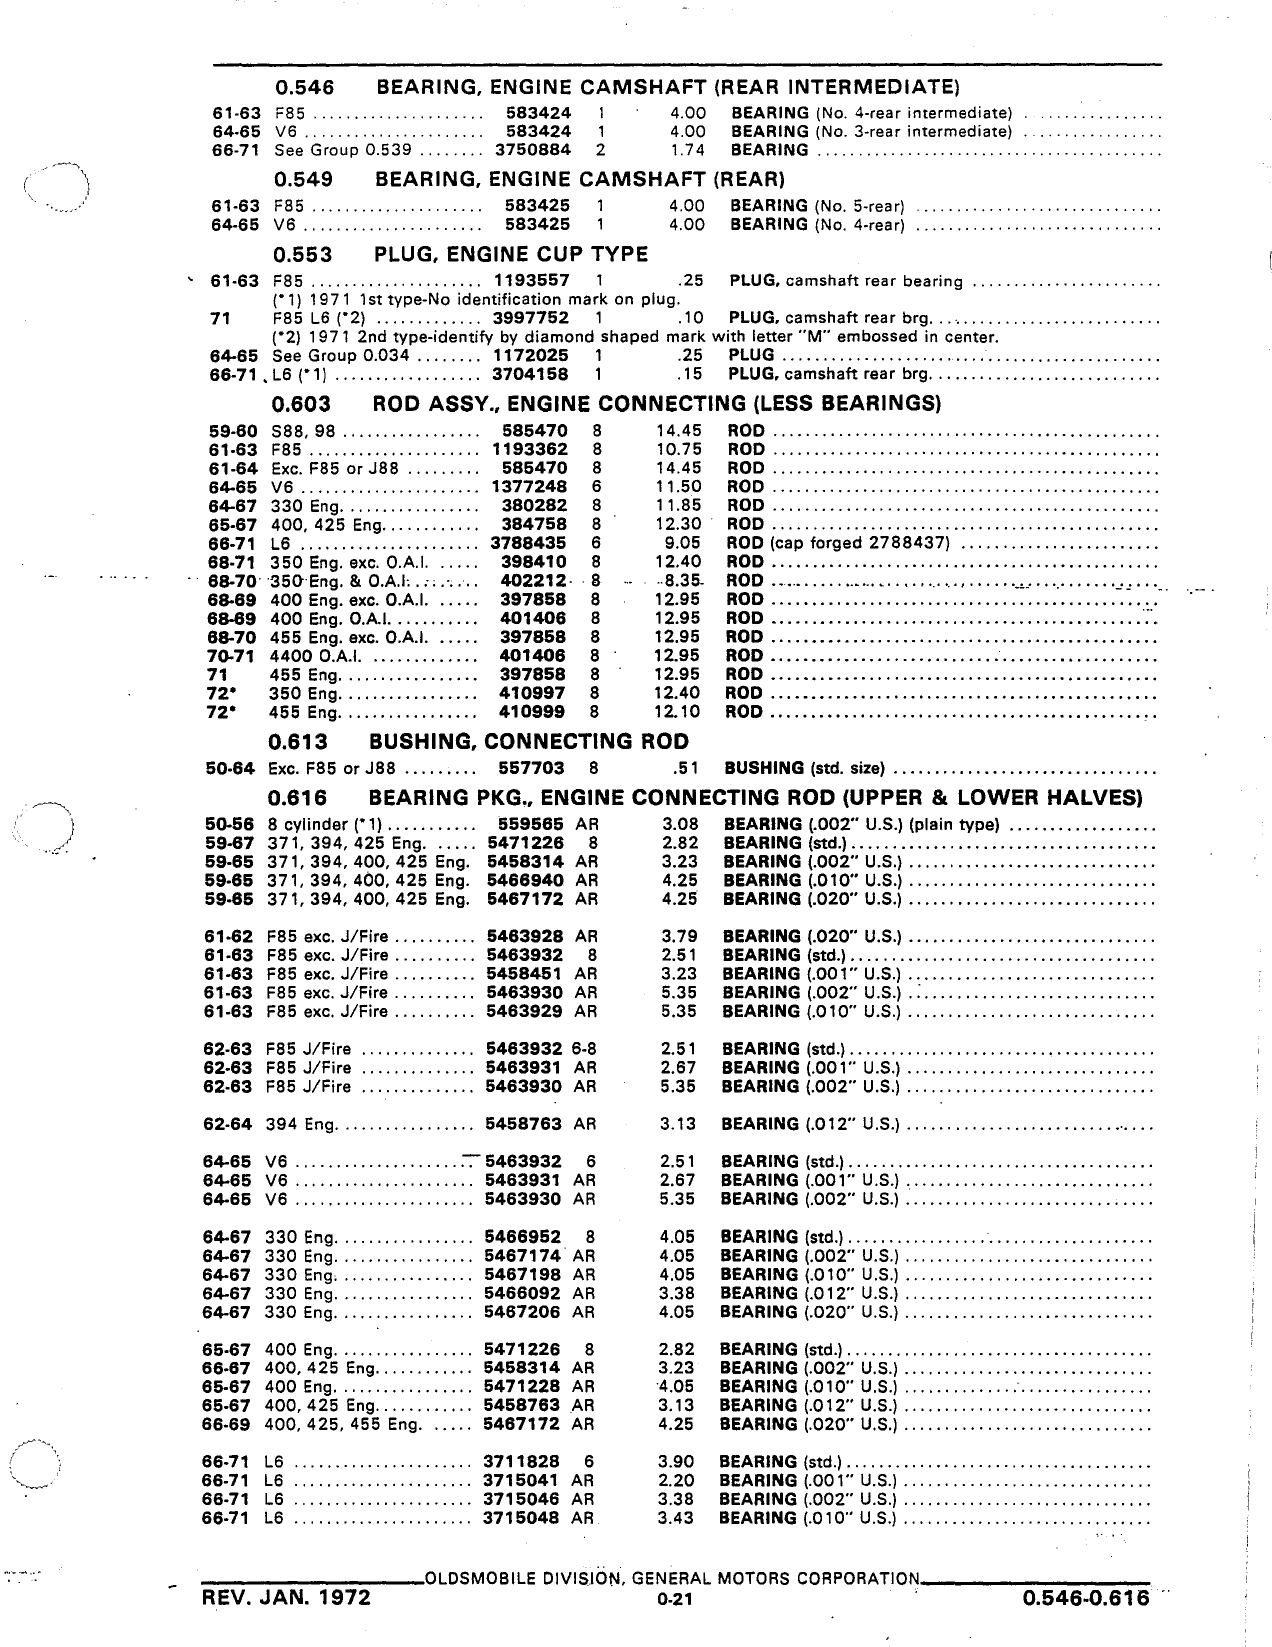 Parts and Accessories Catalog January 1972